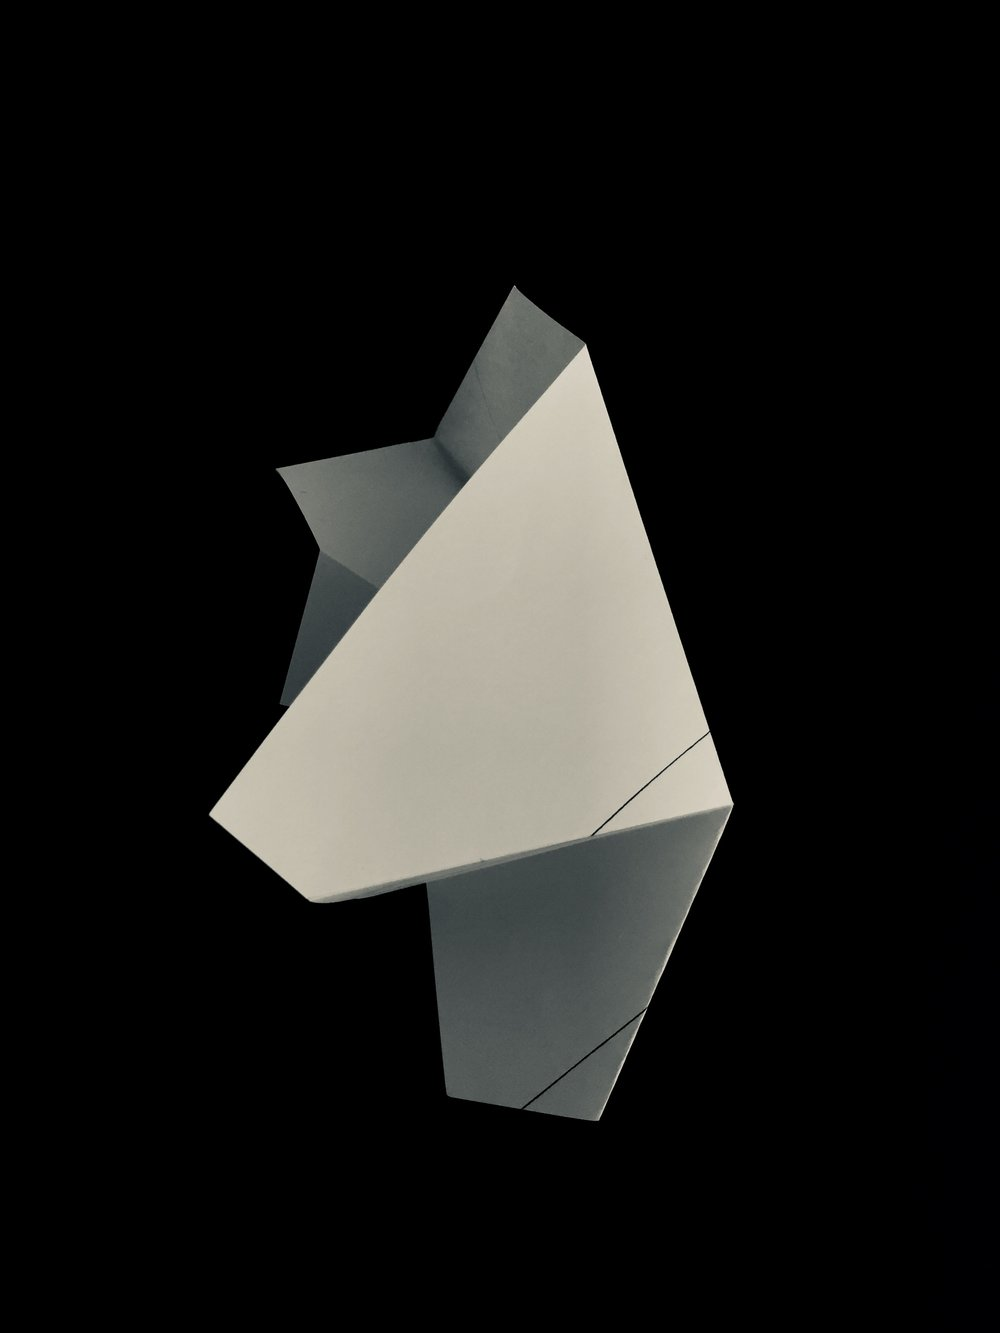 unresolved objects - 2017 : in considering Richards Feynman's work with geometrical mathematical structures these constructed objects reference their digital simulation which could be expressed through Delaunay triangulations. They are a translation of abstracted image-objects that might manifest themselves in real time through 3D scanning and algorithmic shape retrieval database systems.